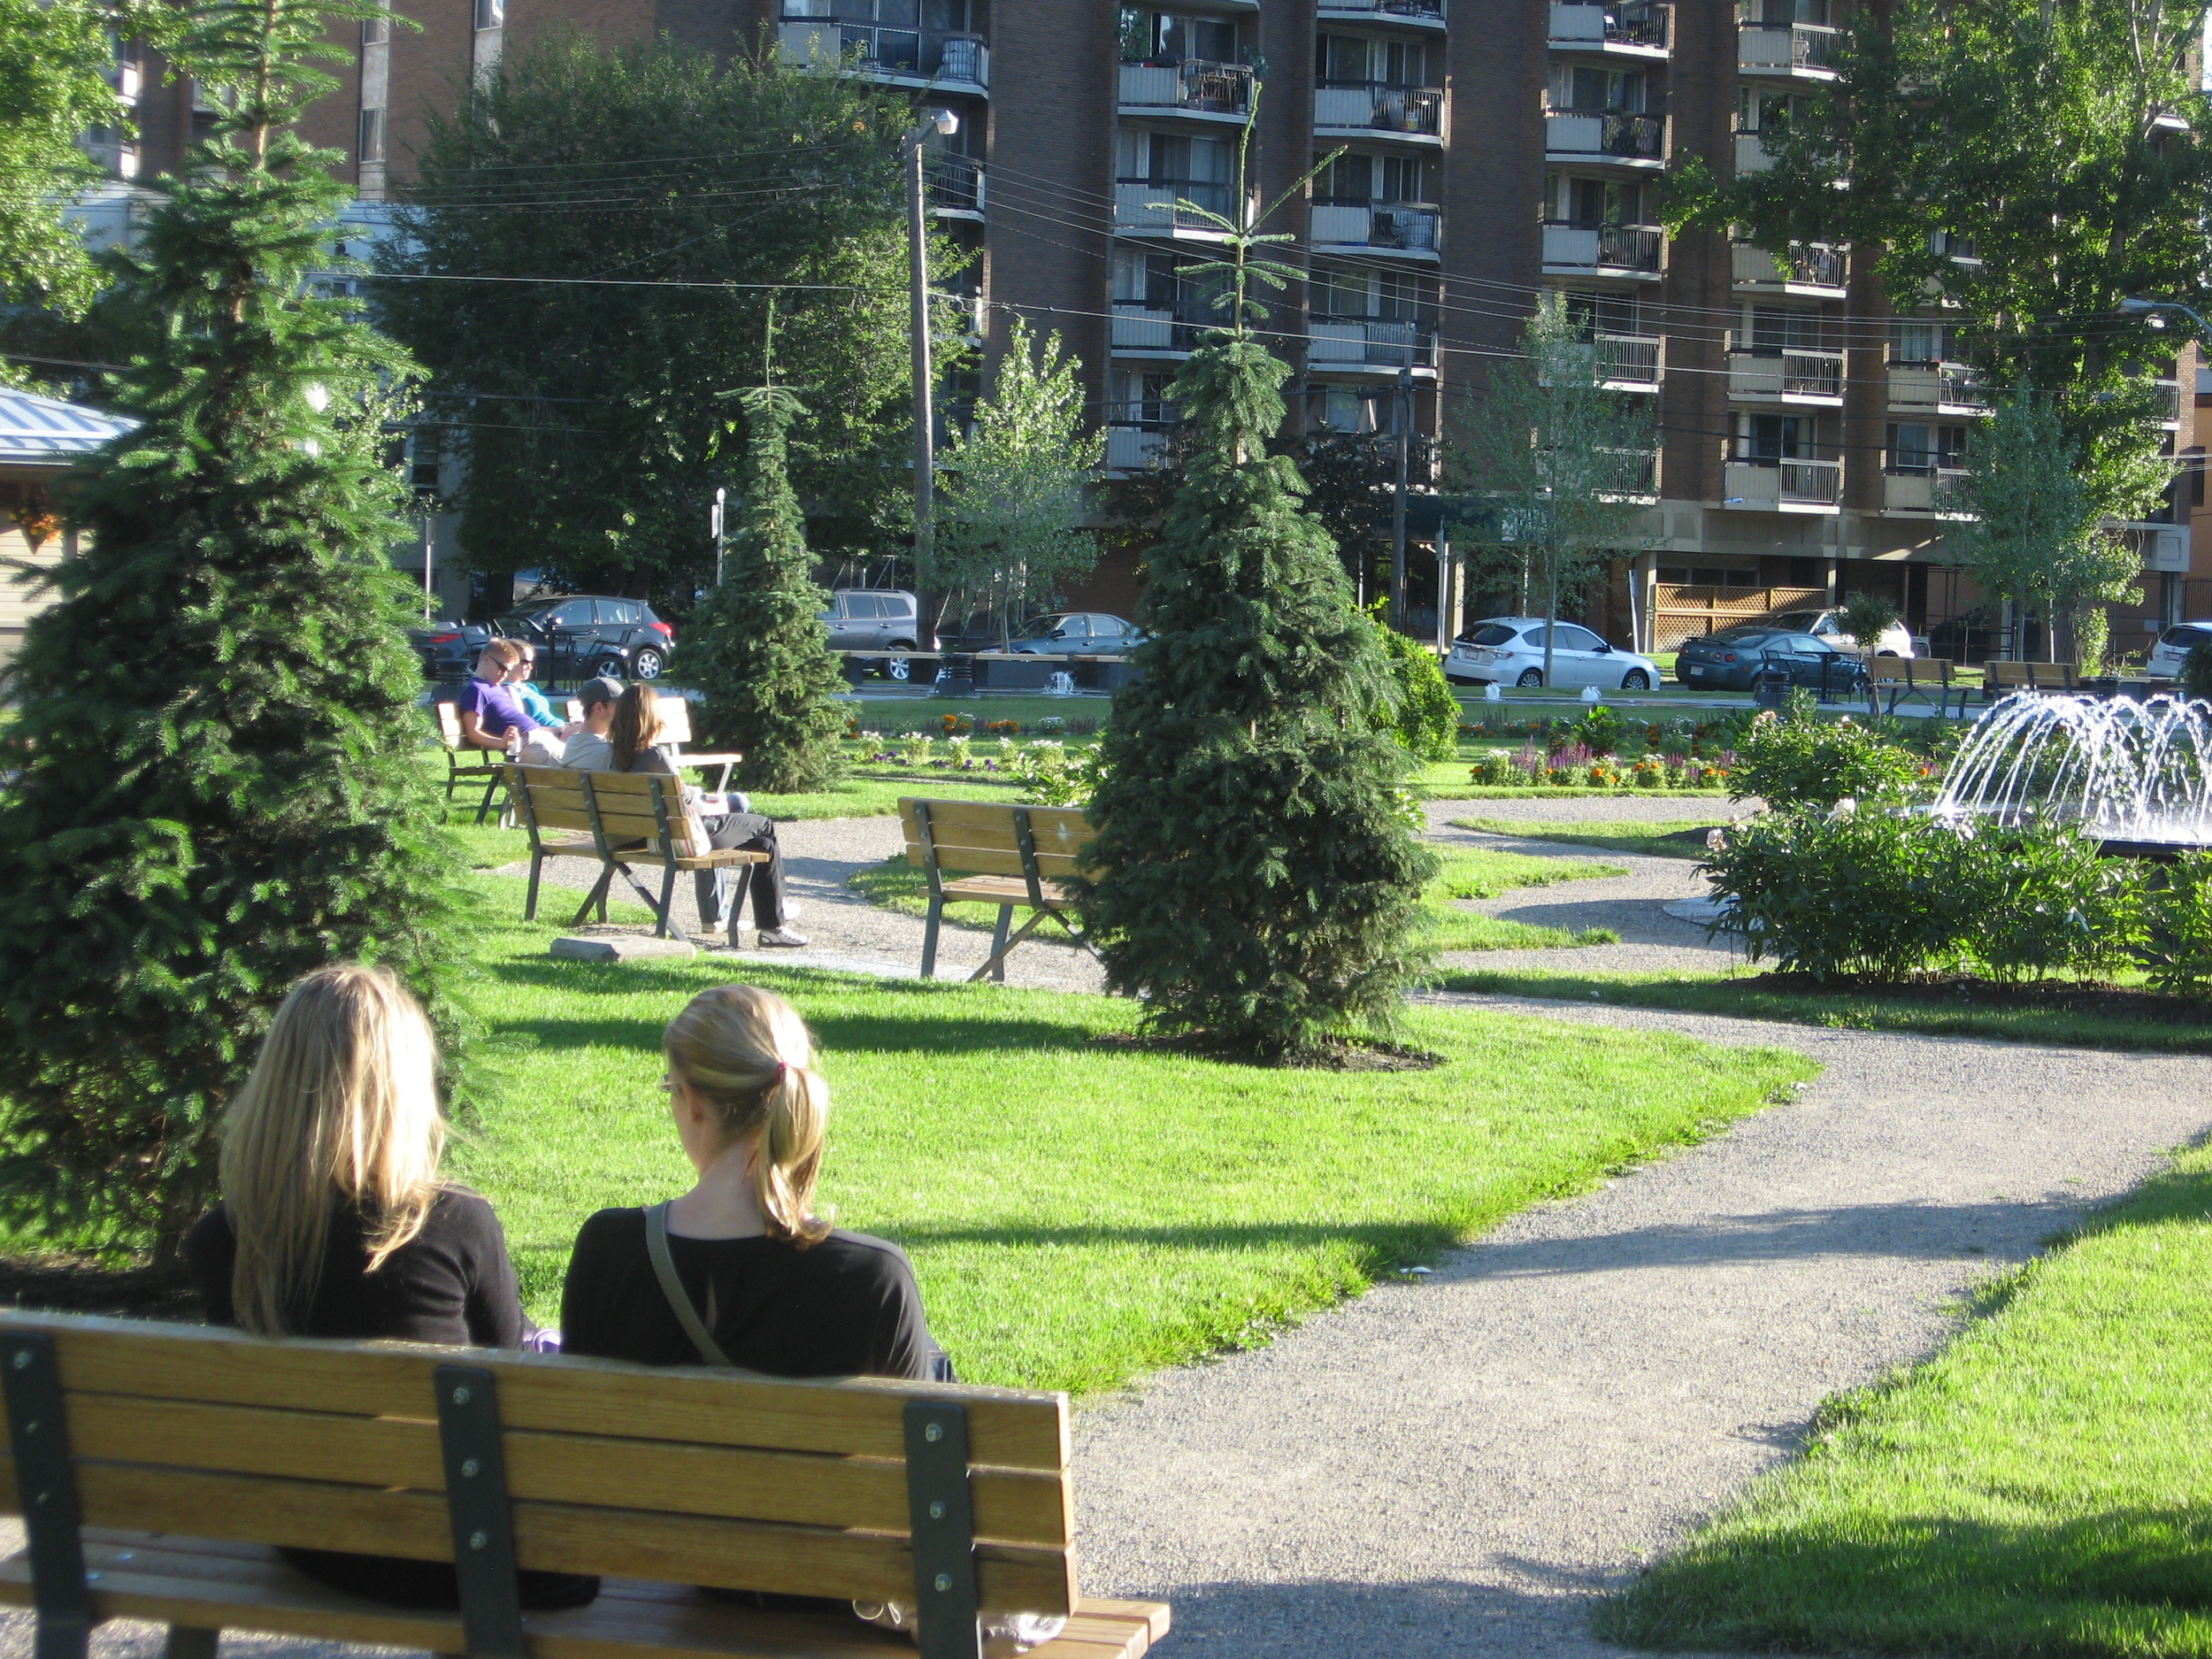 Memorial Park is a great example of an urban park that has be redesigned to encourage the public to sit and linger.